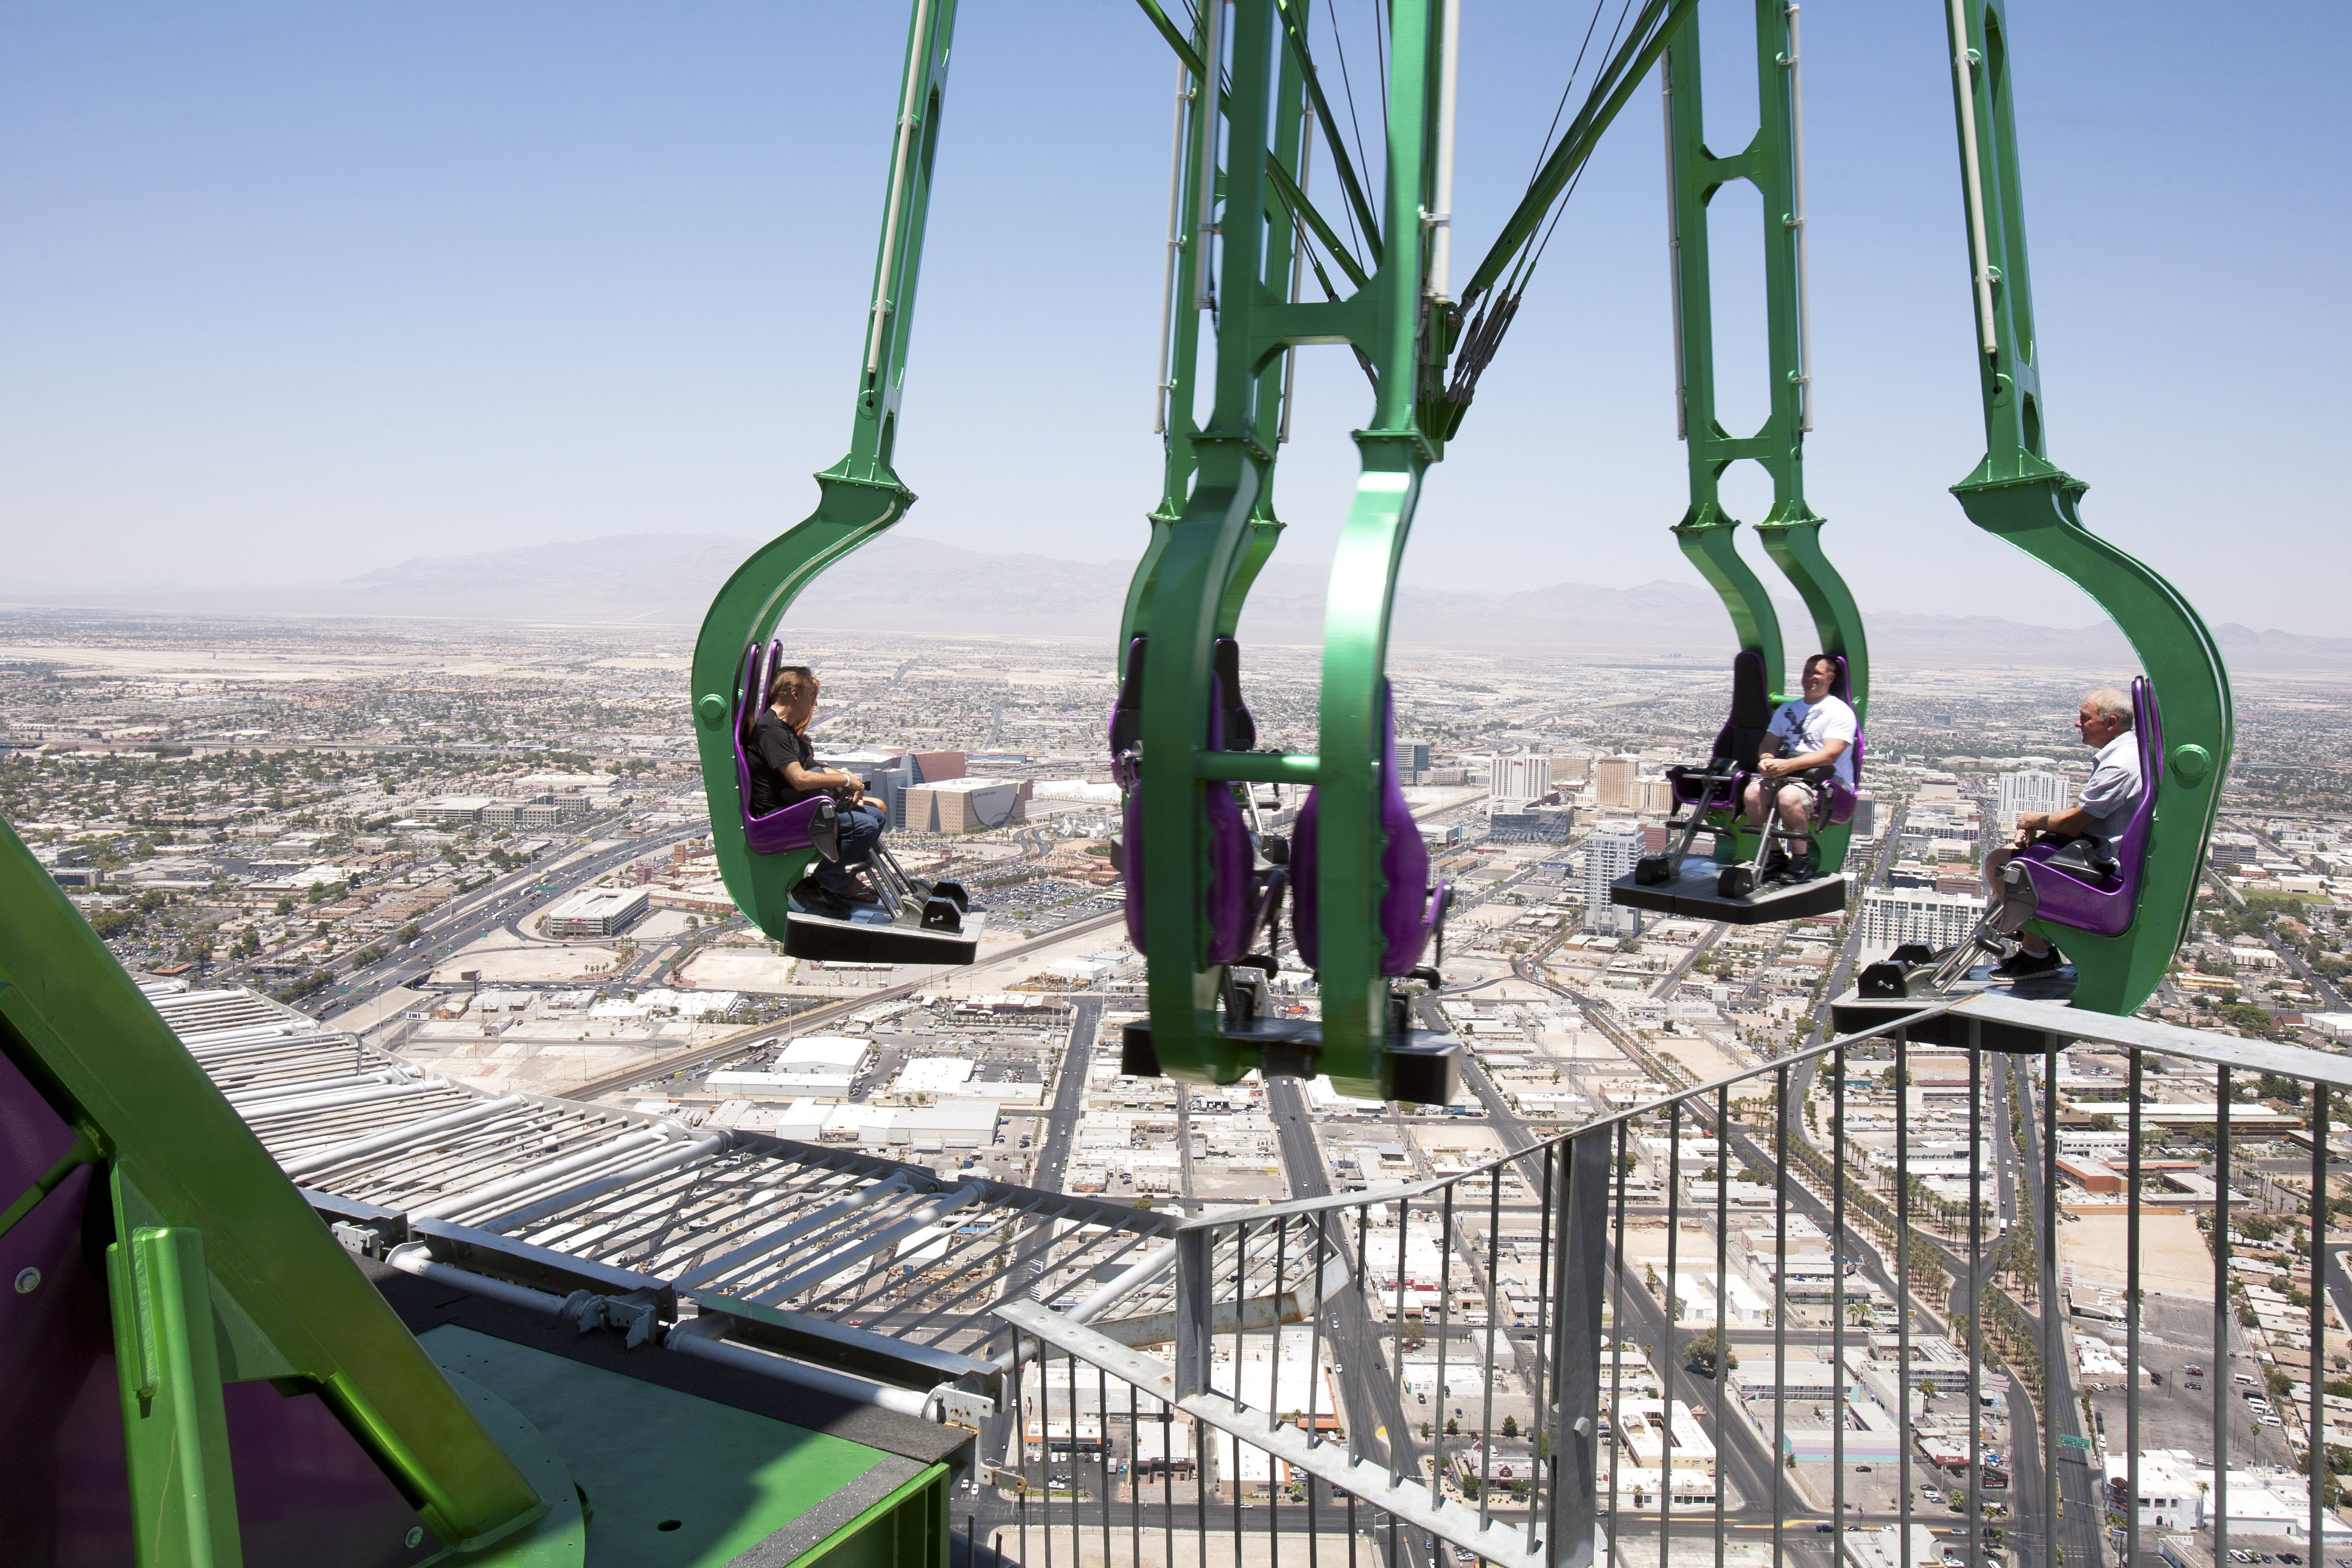 Riders on Insanity at the Stratosphere